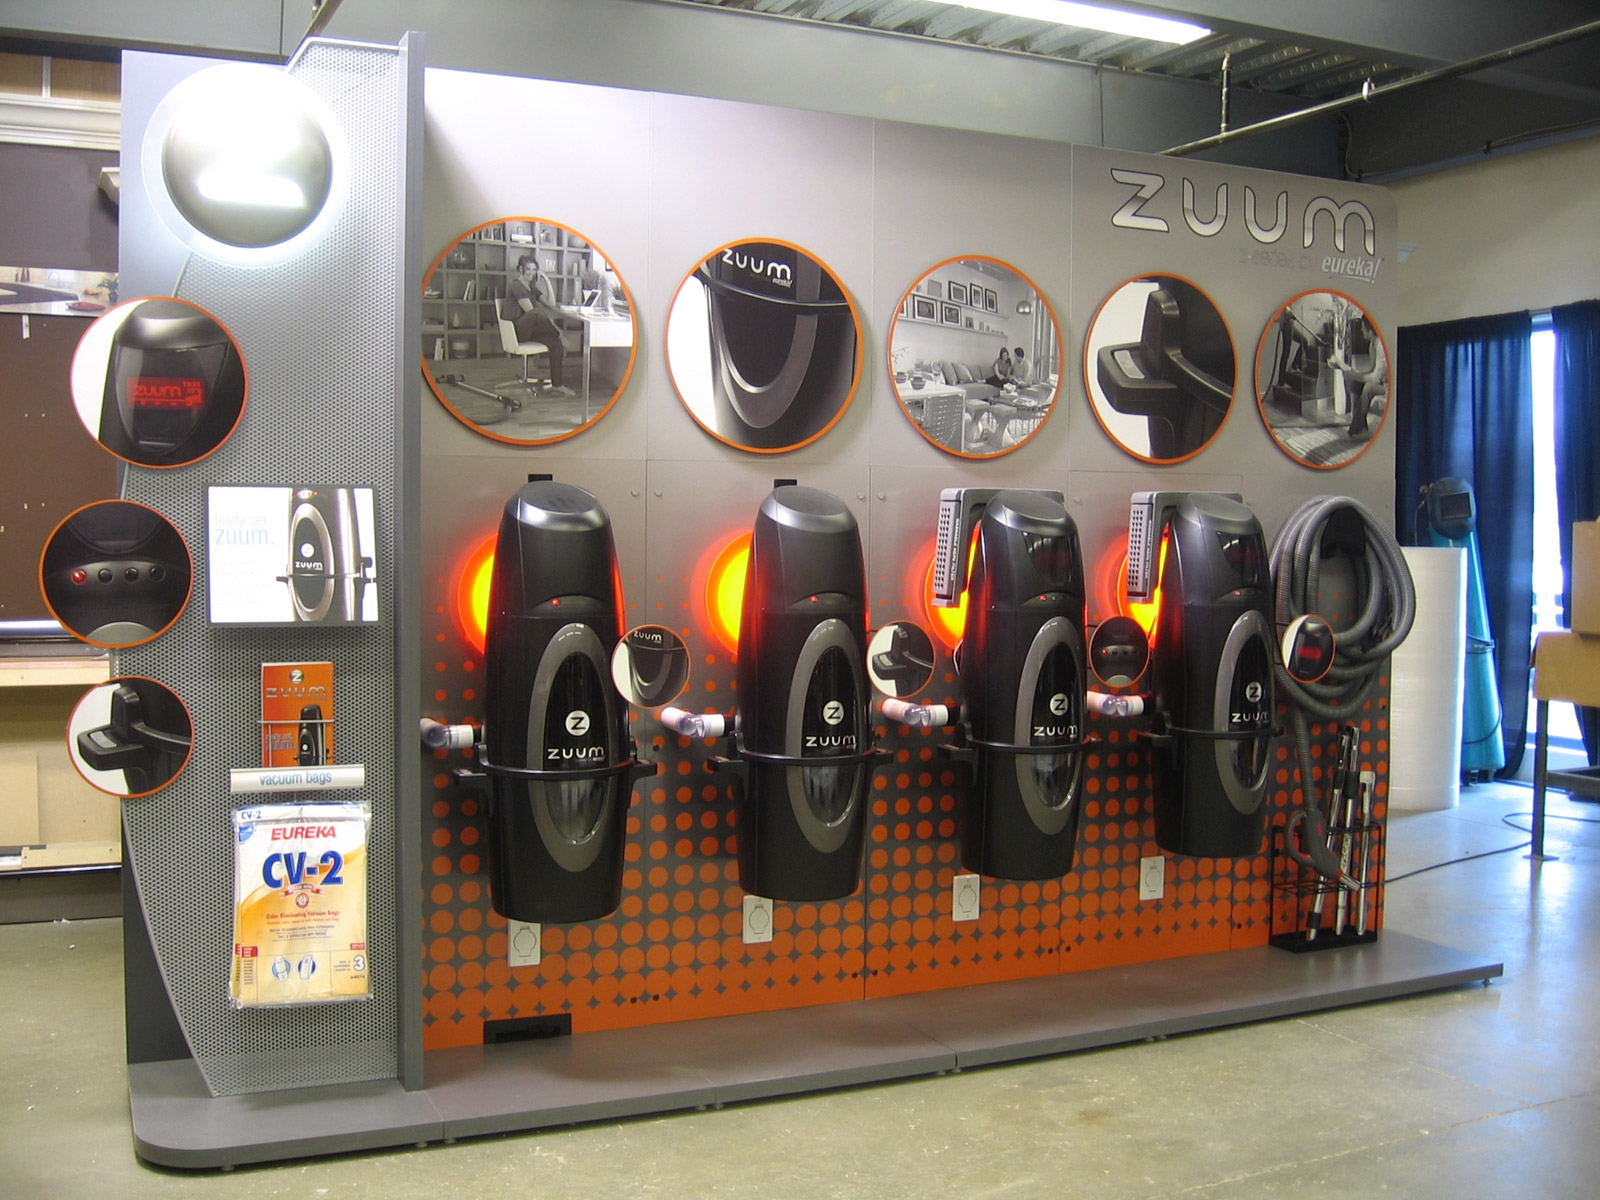 Retail Displays Fixtures Environments